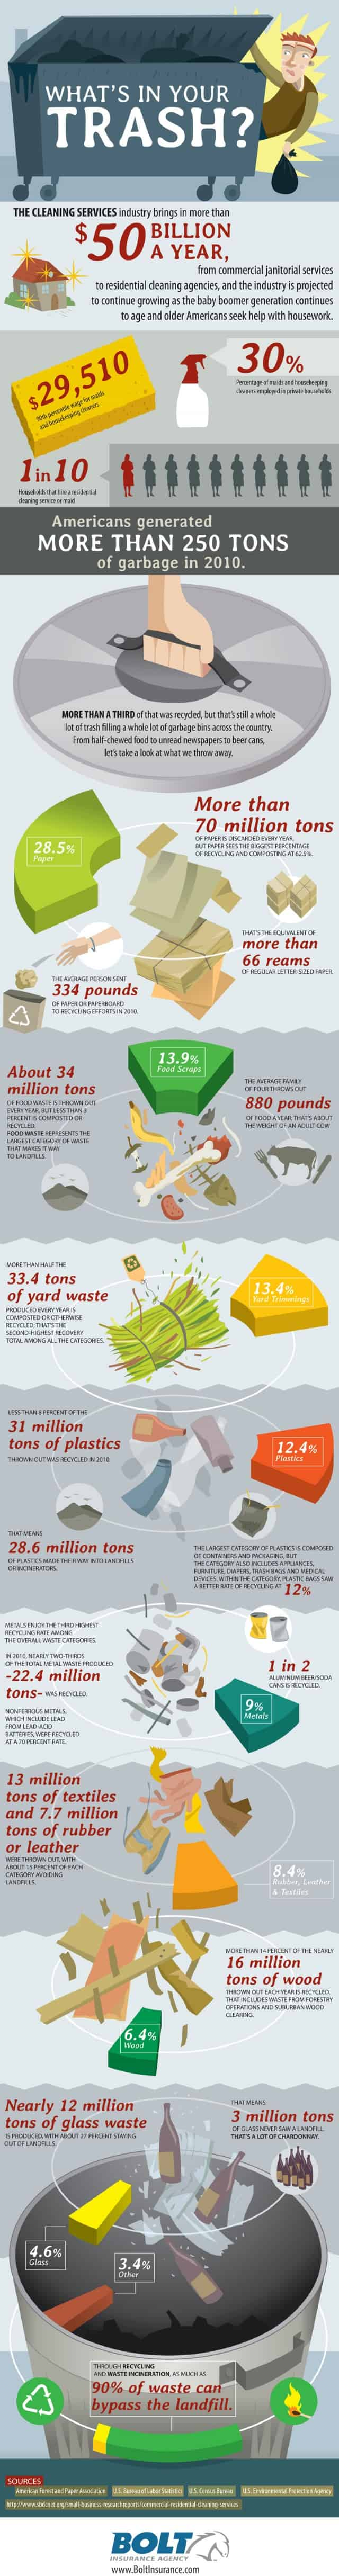 whats-in-your-trash-infographic-640x4865